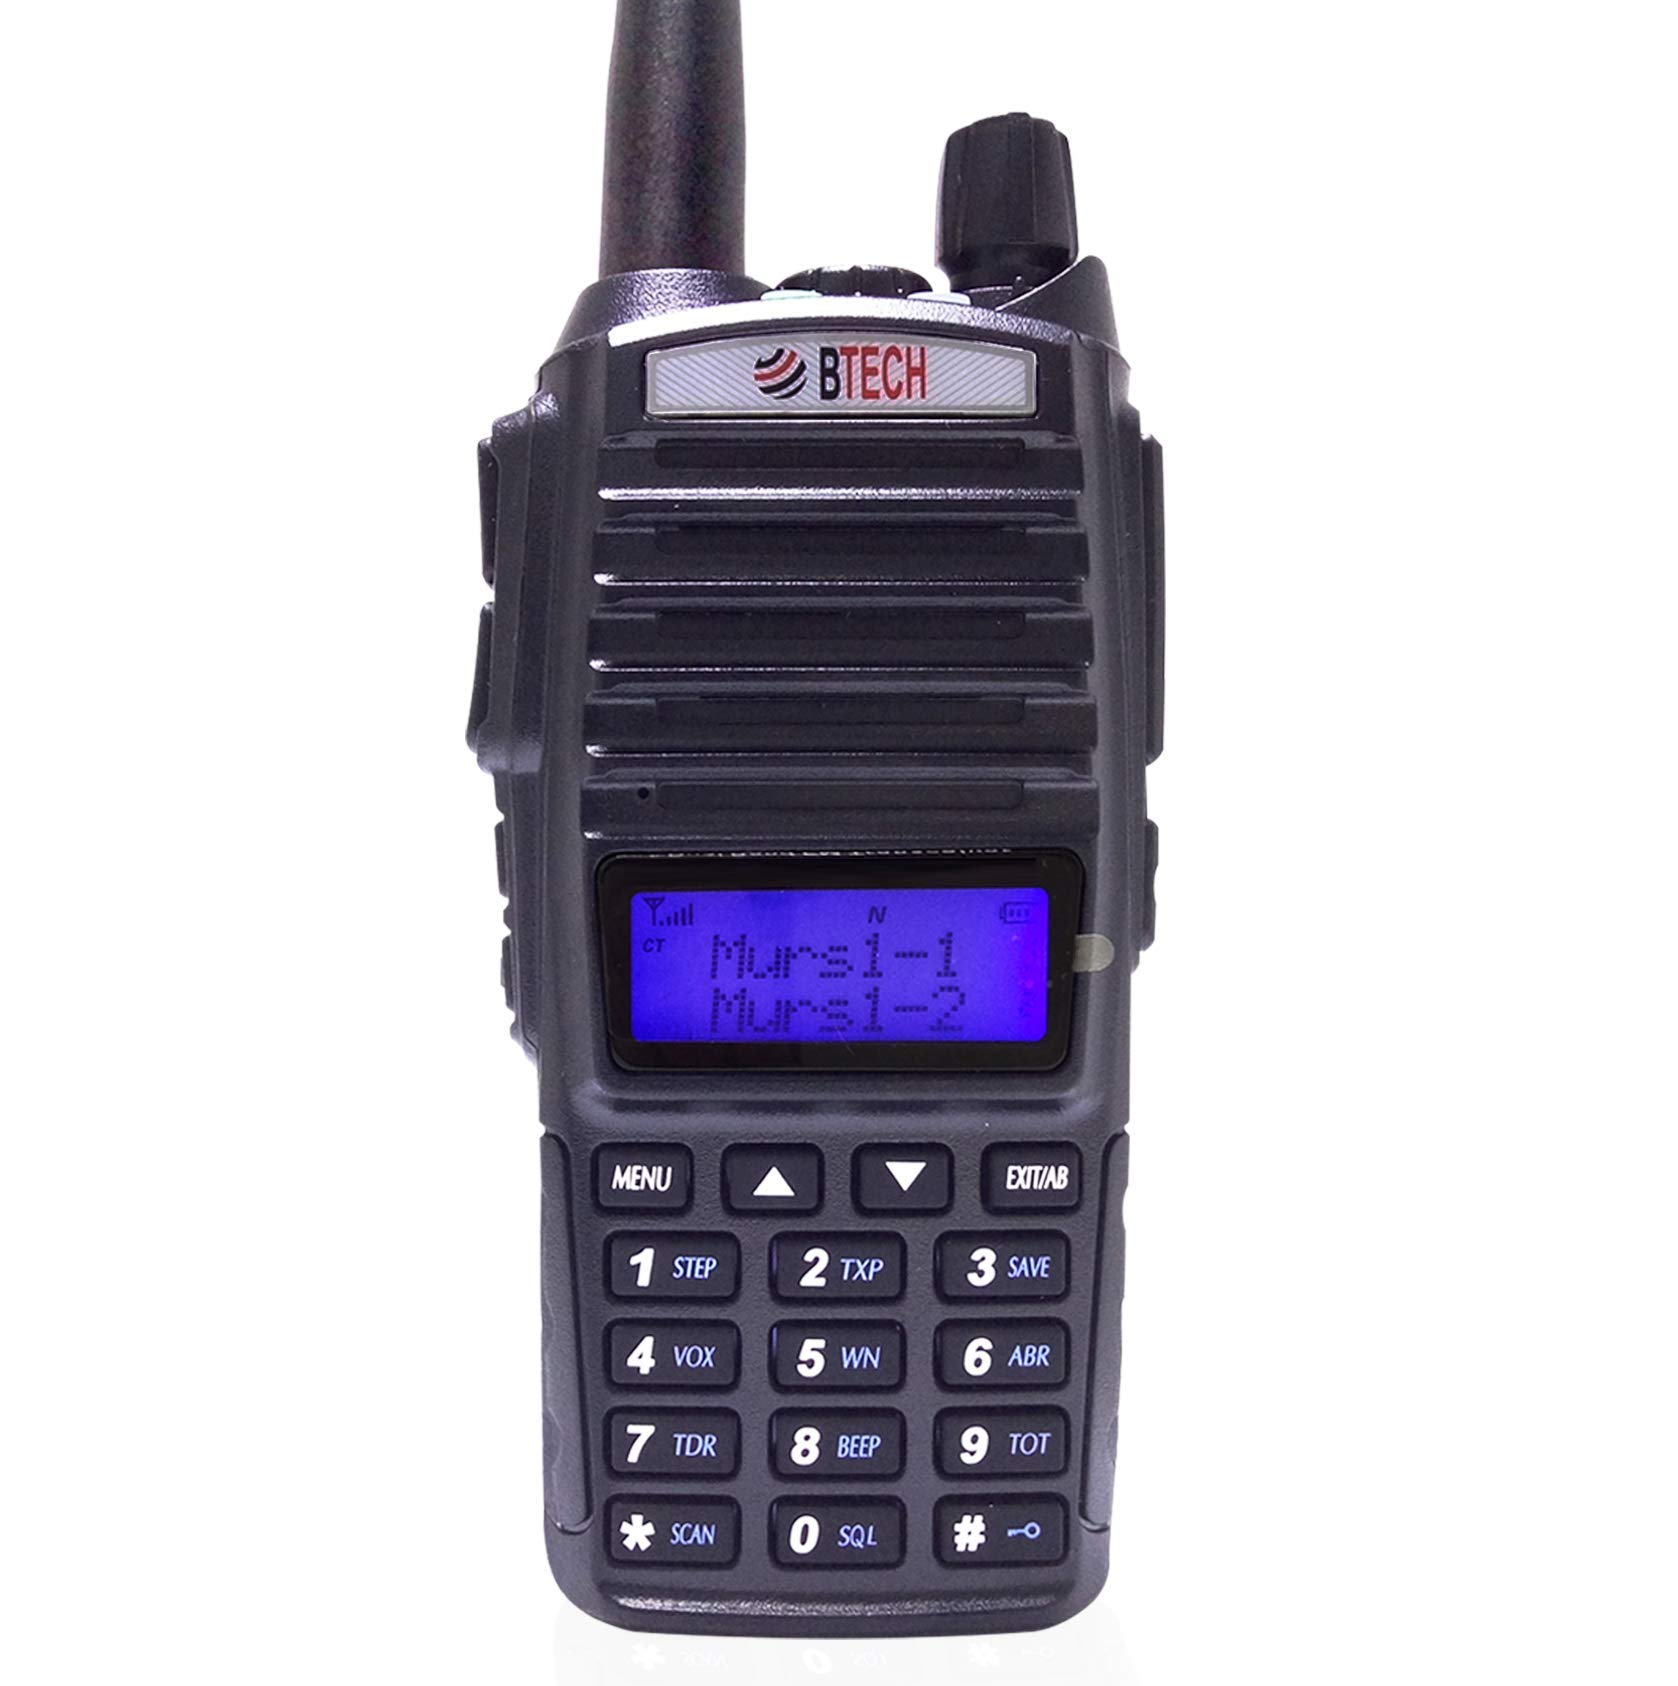 BTECH MURS-V1 MURS Two-Way Radio, License Free Two-Way Radio for Manufacturing, Retail, Personal, and Business by BTECH